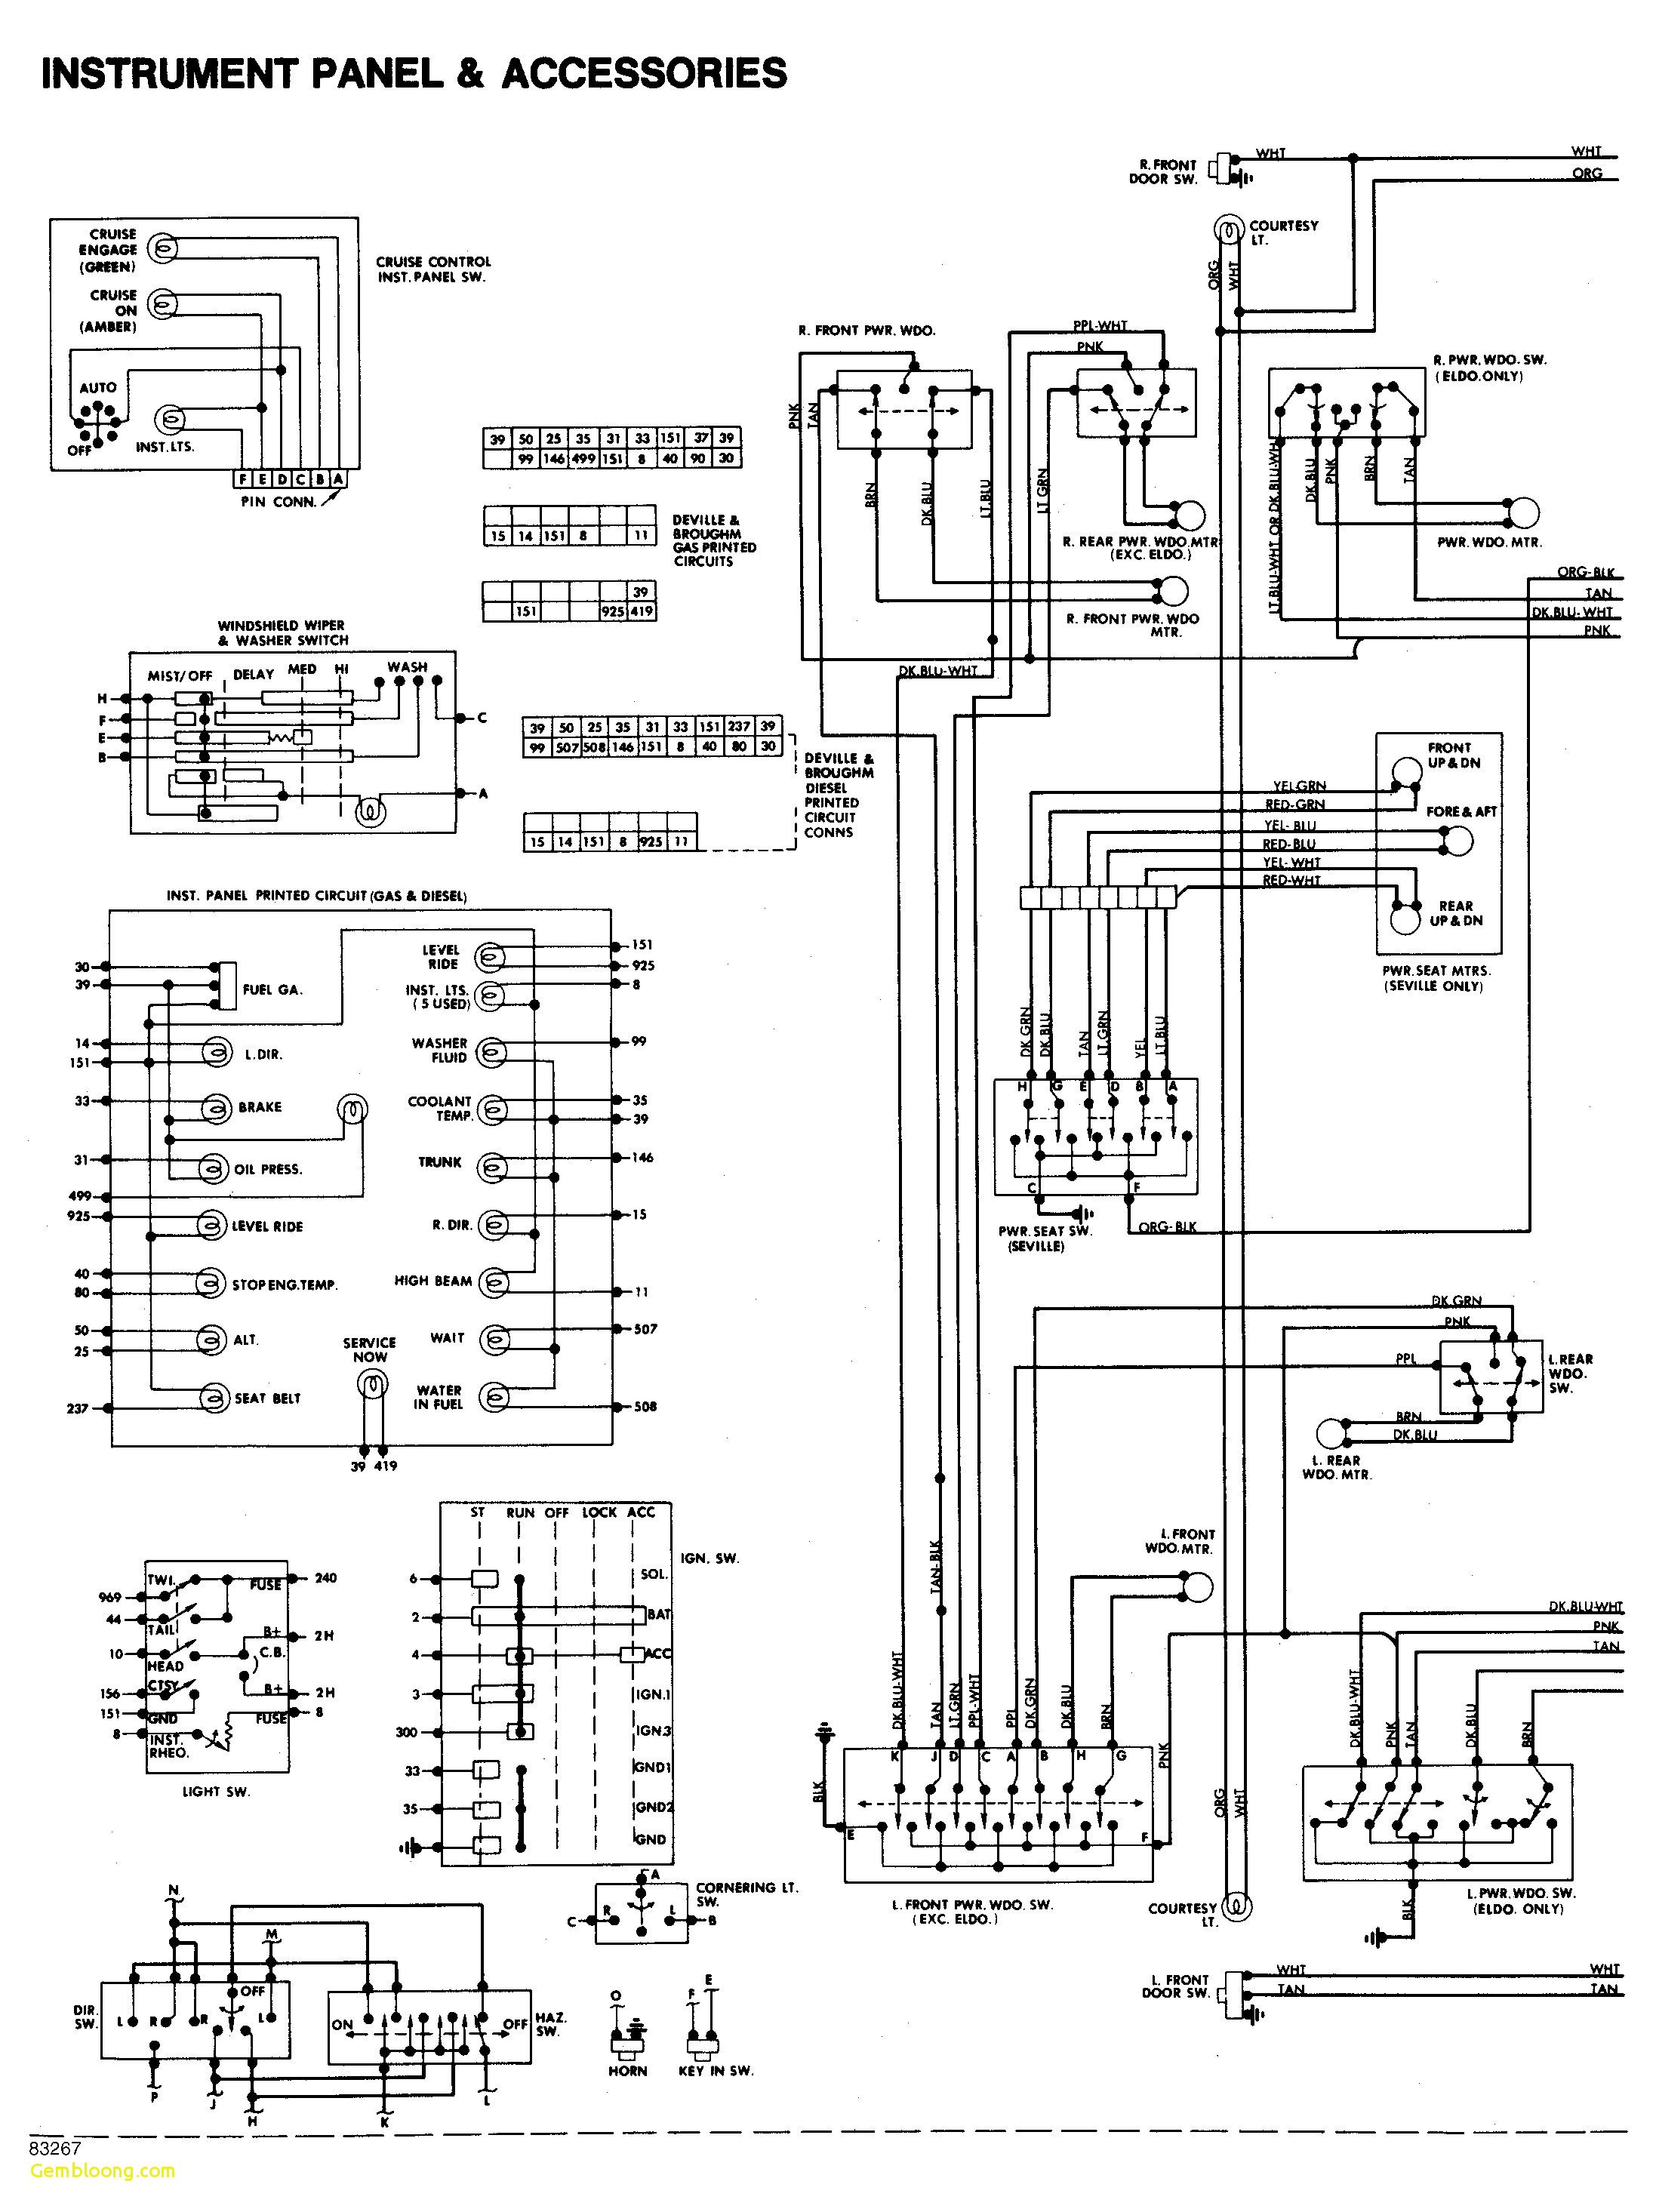 22 Stunning Free Vehicle Wiring Diagrams (Dengan gambar